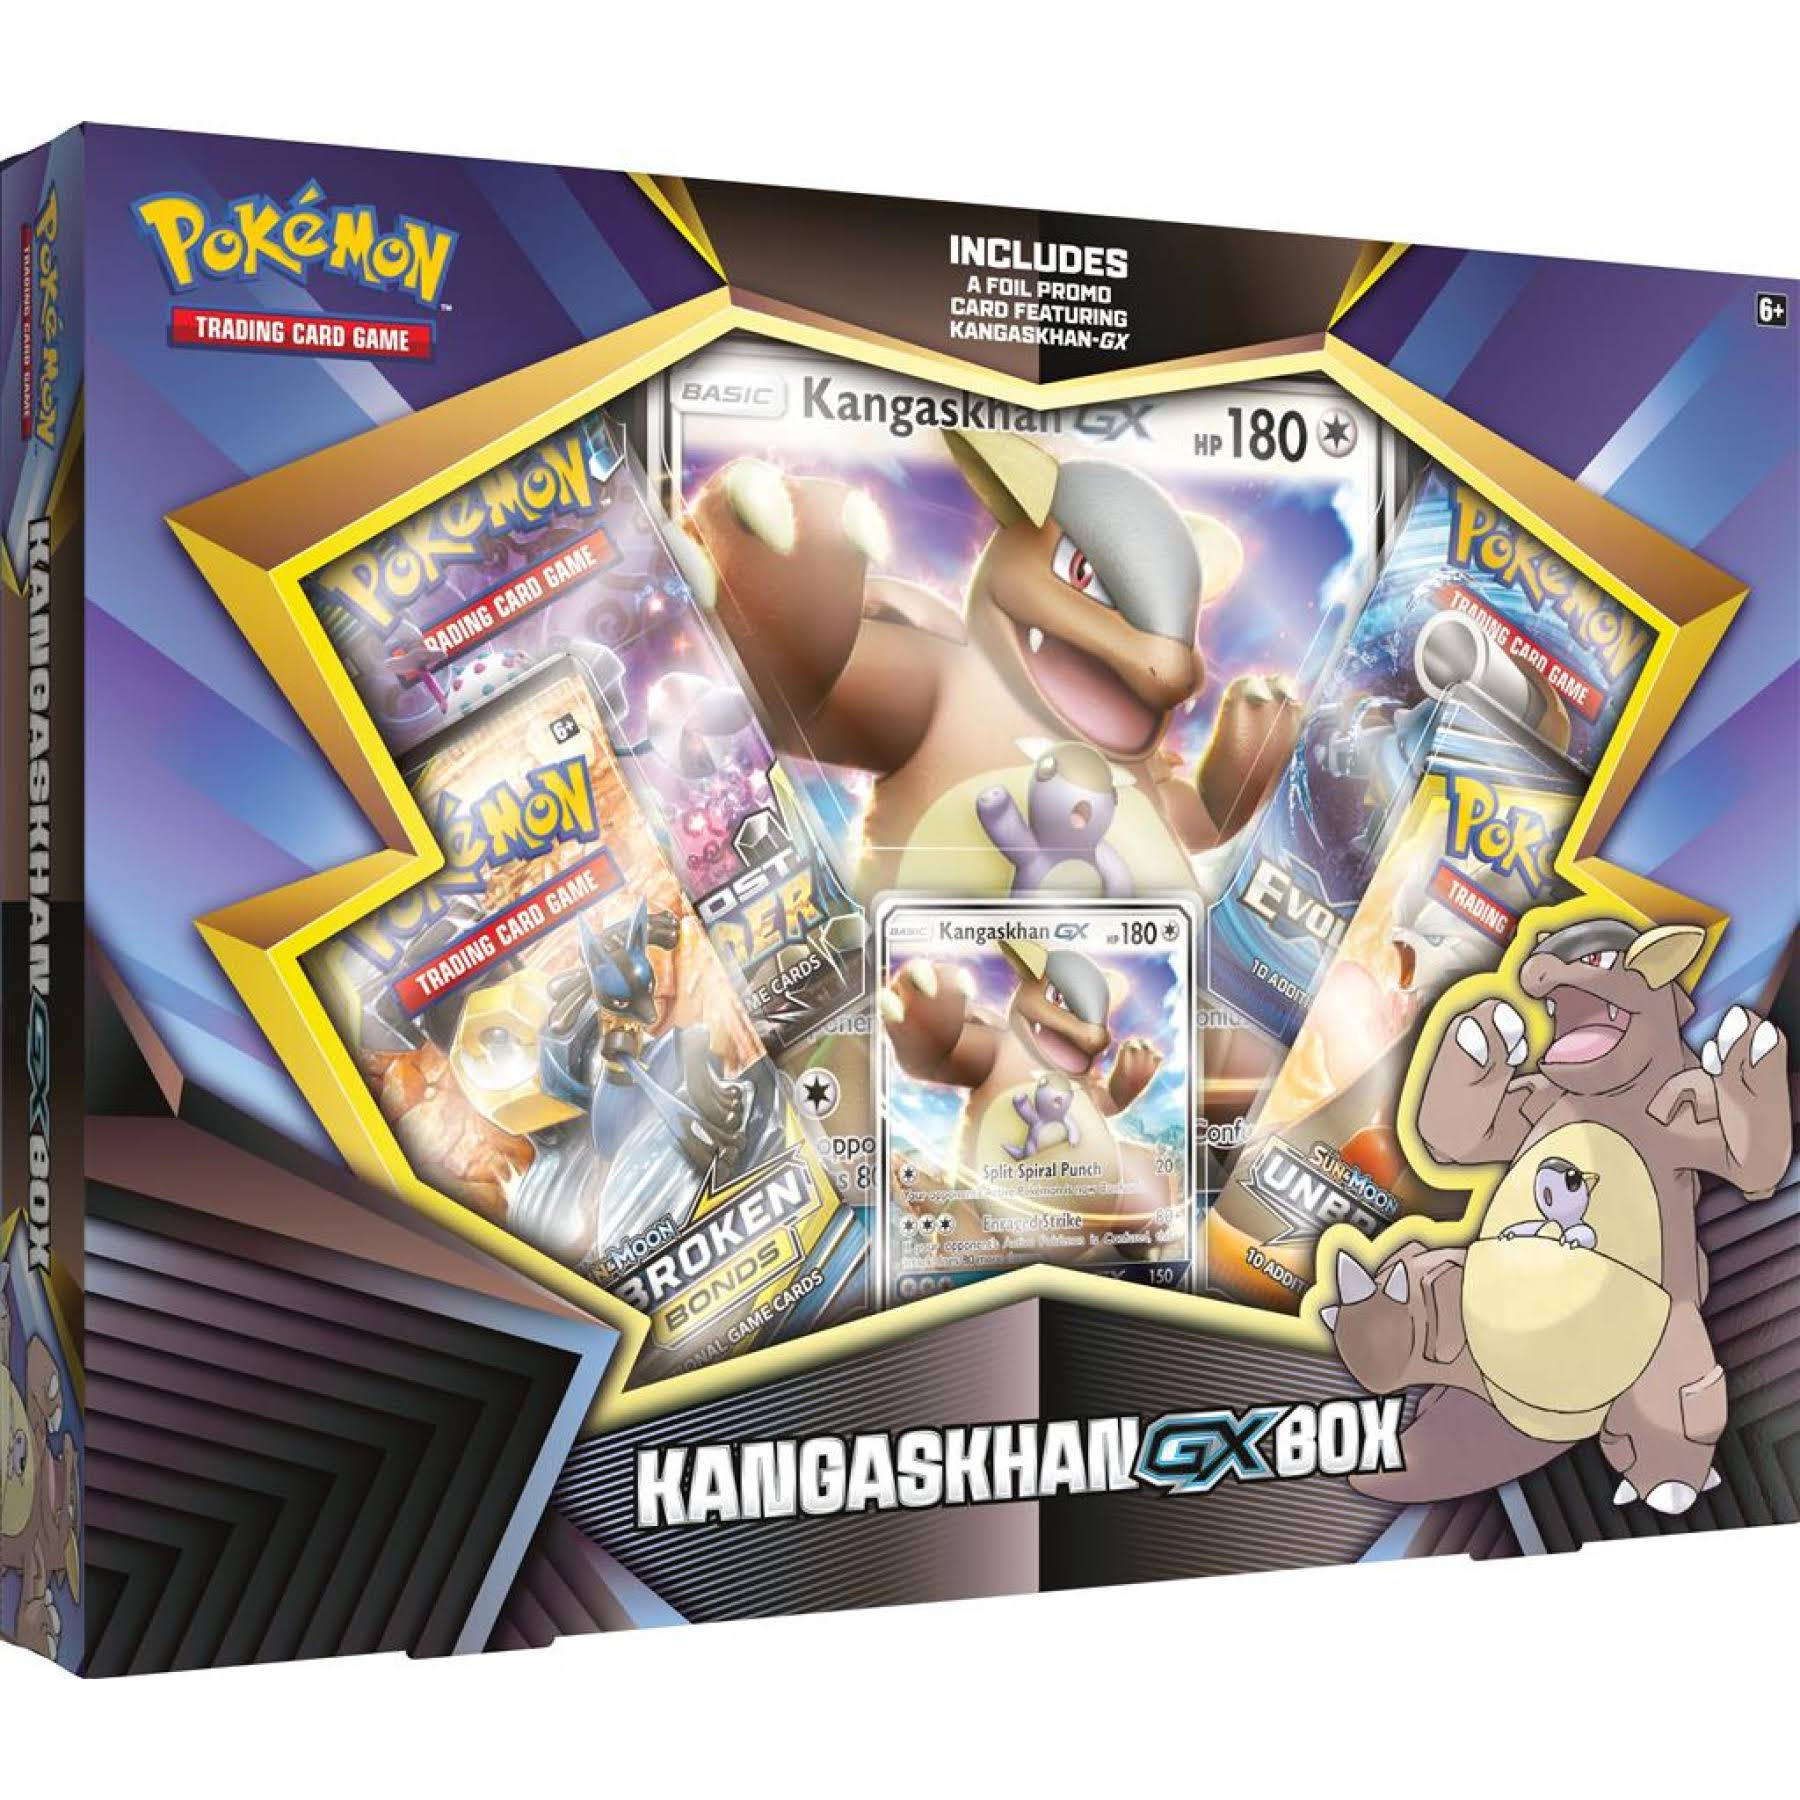 Pokemon - Kangaskhan-GX Box